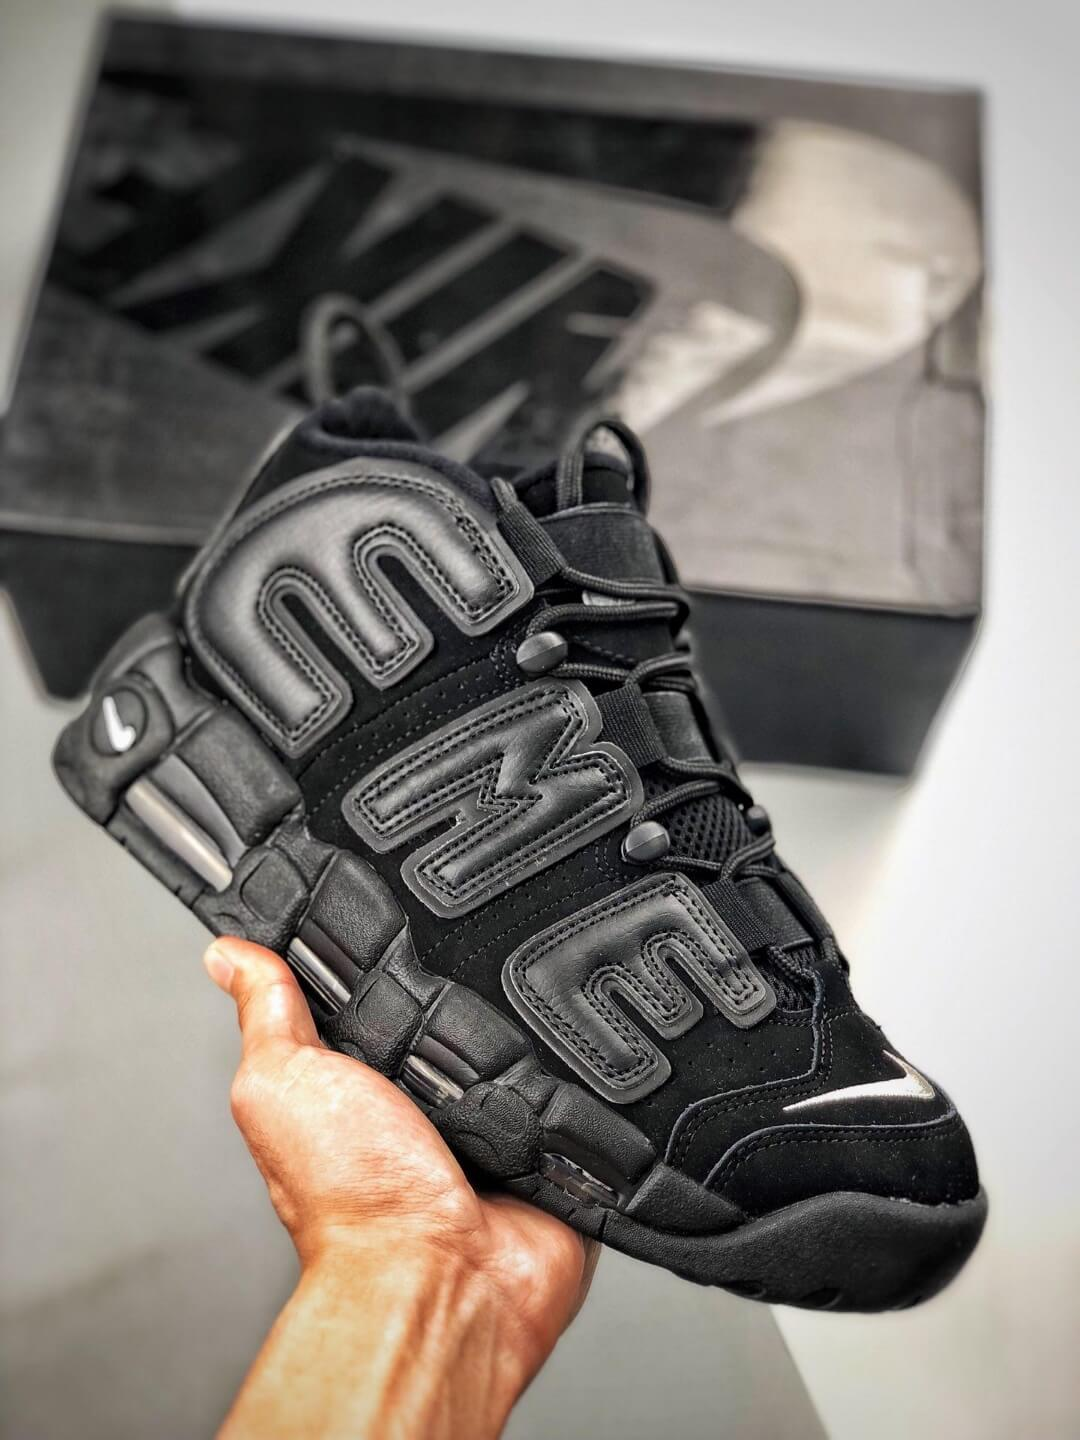 The Nike Supreme x Air More Uptempo Black Basketball Shoes Premium Suede Upper Rep Sneakers 01